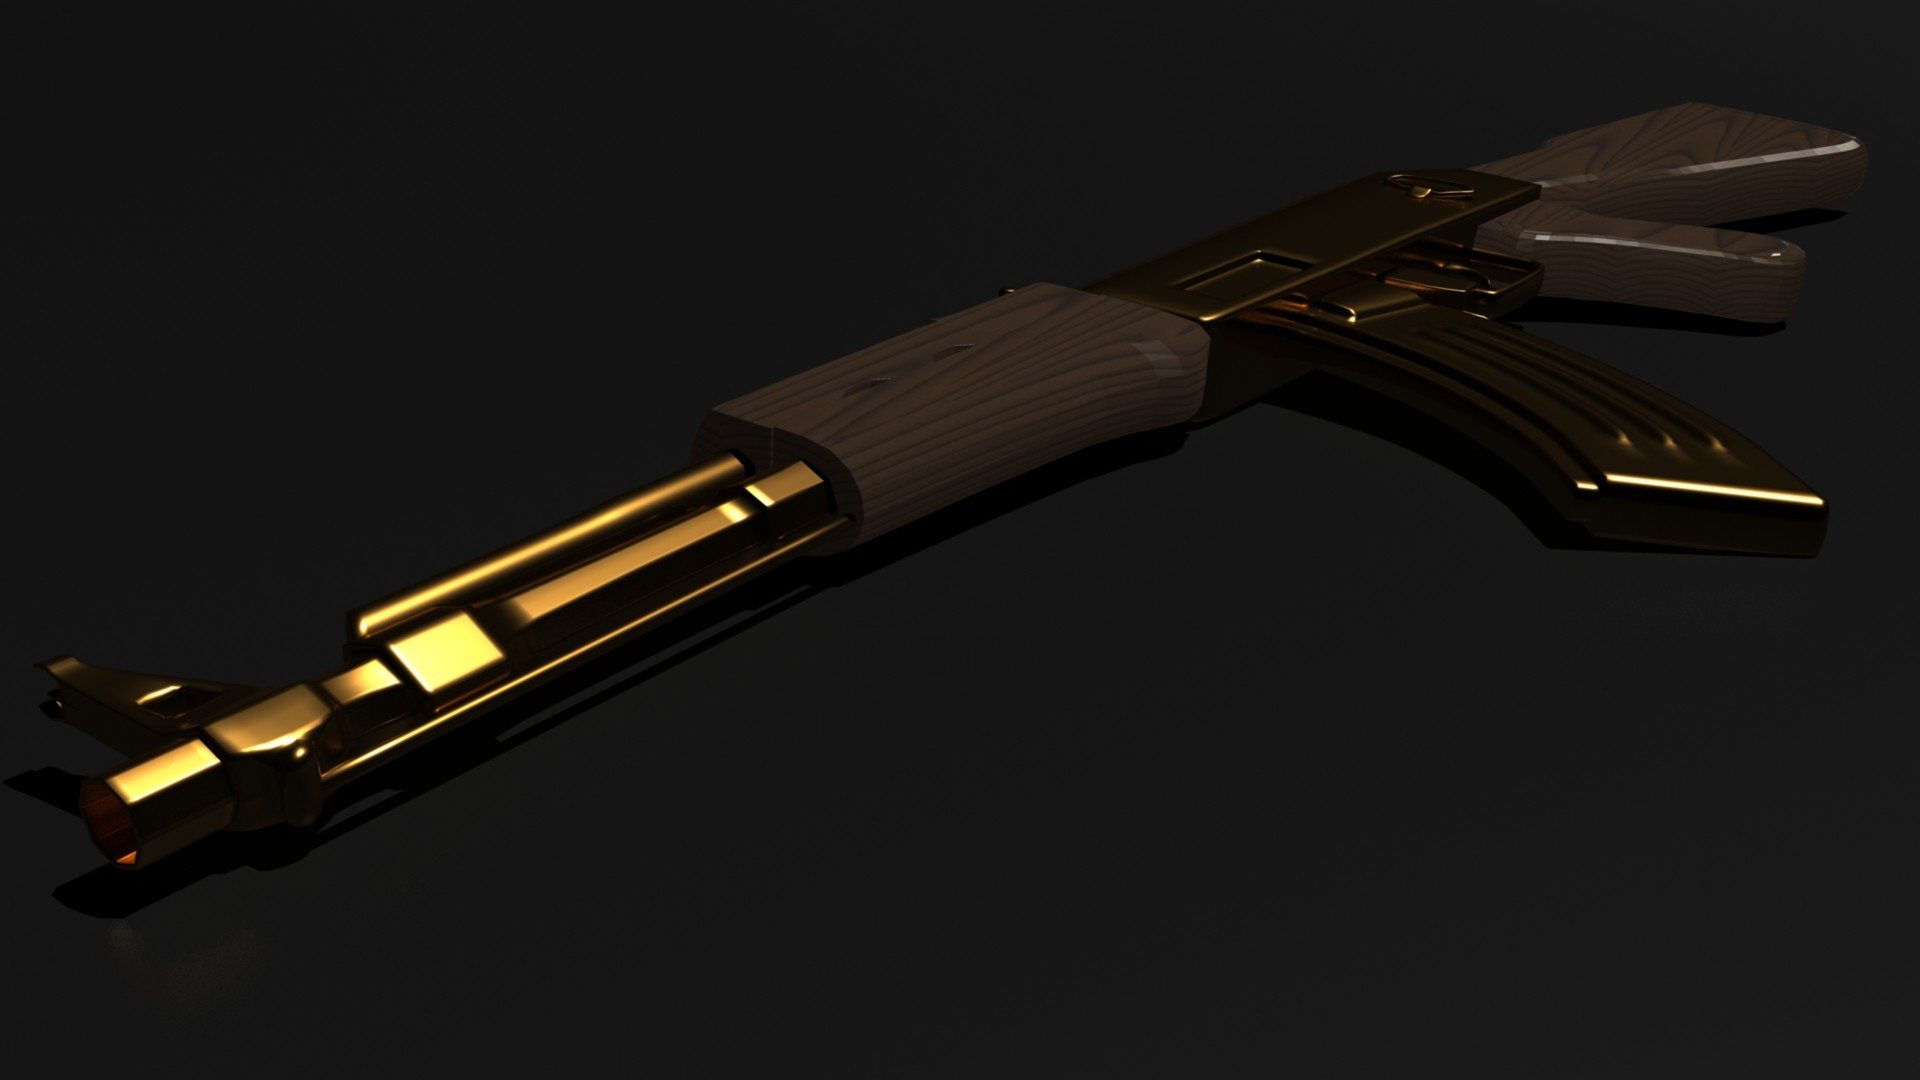 Gold Guns Wallpaper Ak 47 72 Images